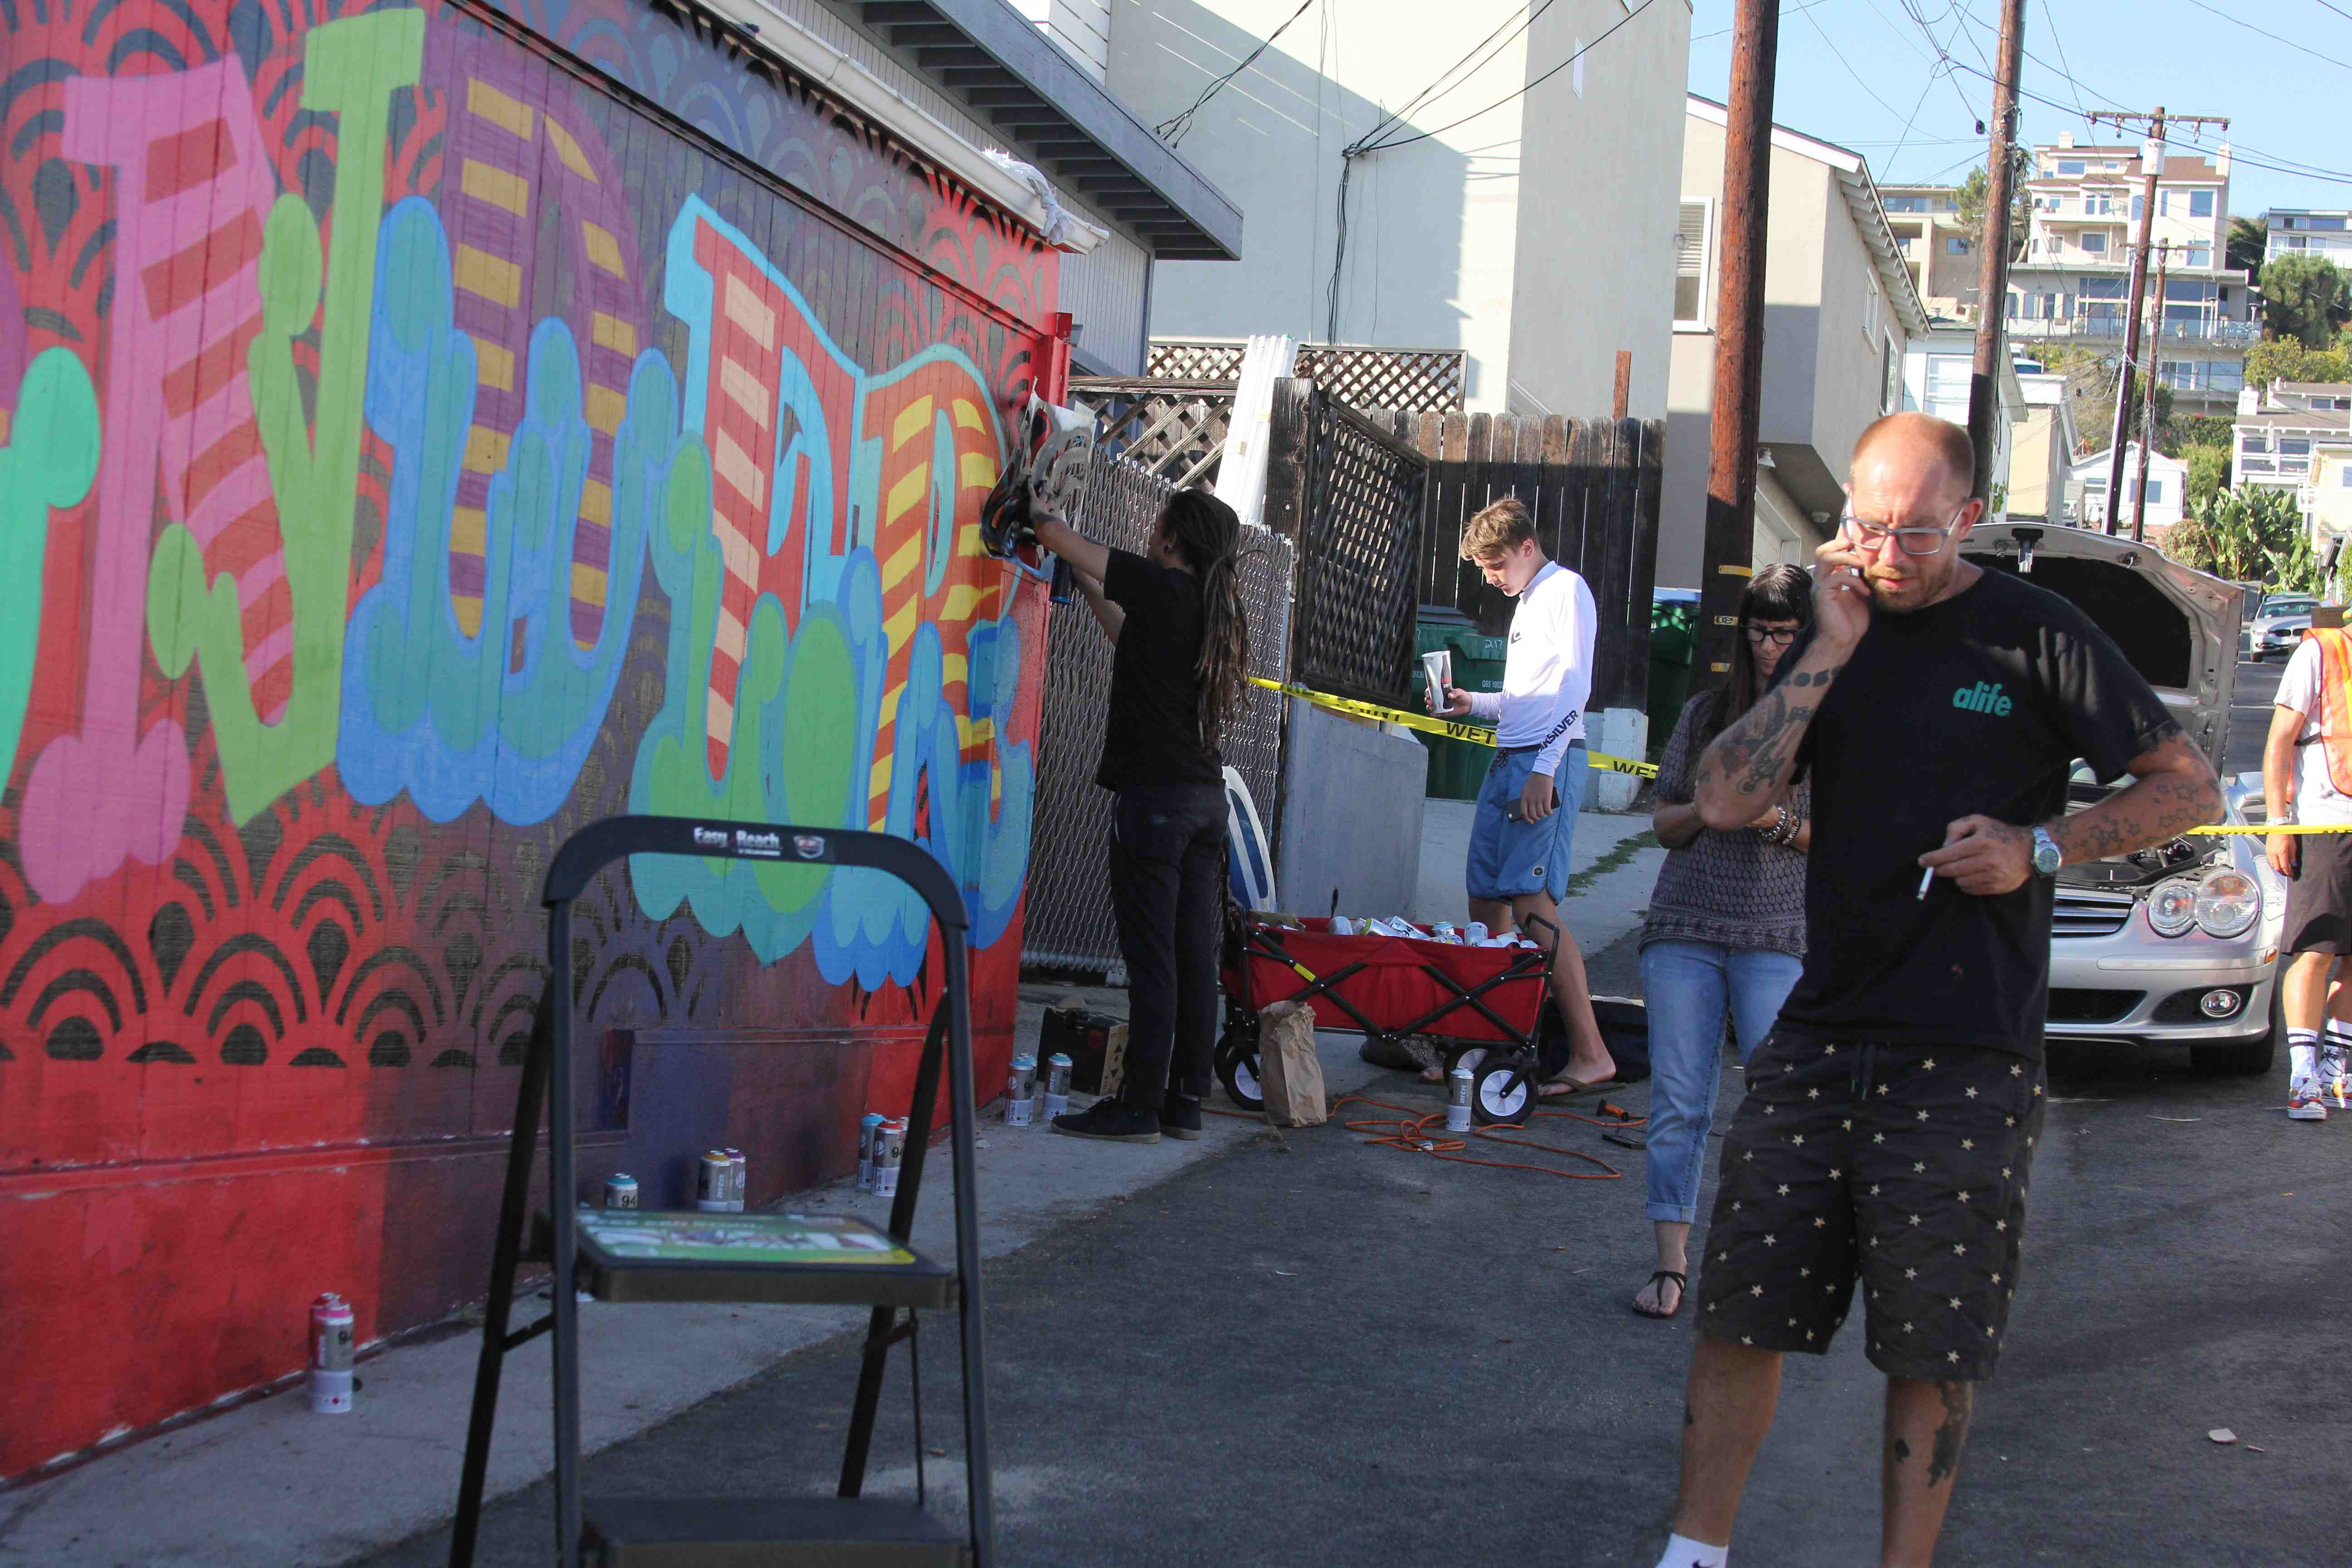 """Photo by Andrea Adelson Street artist Ben Eine finishing the """"Wonder"""" mural on Aug. 28. Photo by andrea Adelson."""